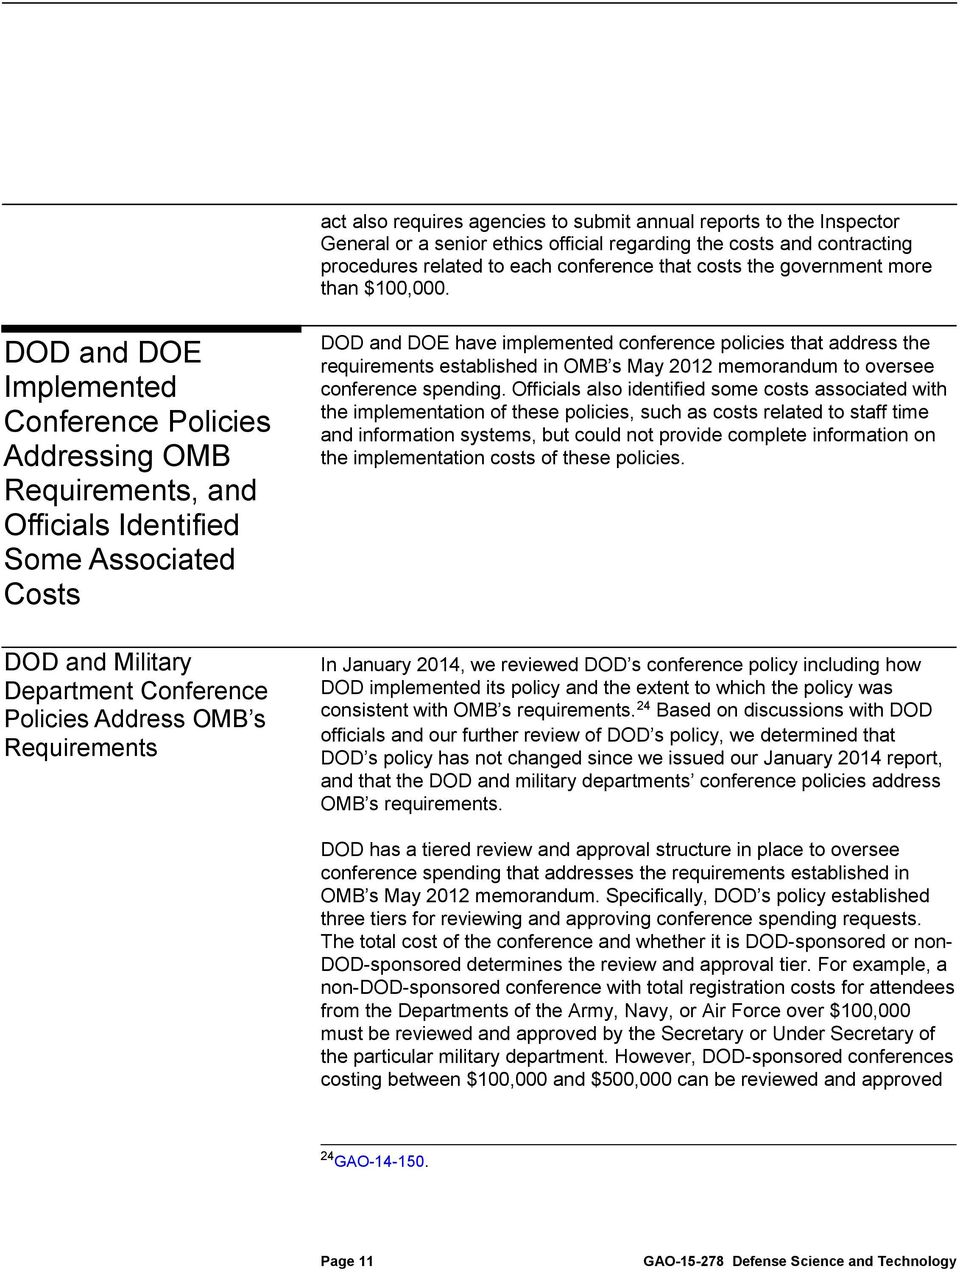 DOD and DOE Implemented Conference Policies Addressing OMB Requirements, and Officials Identified Some Associated Costs DOD and DOE have implemented conference policies that address the requirements